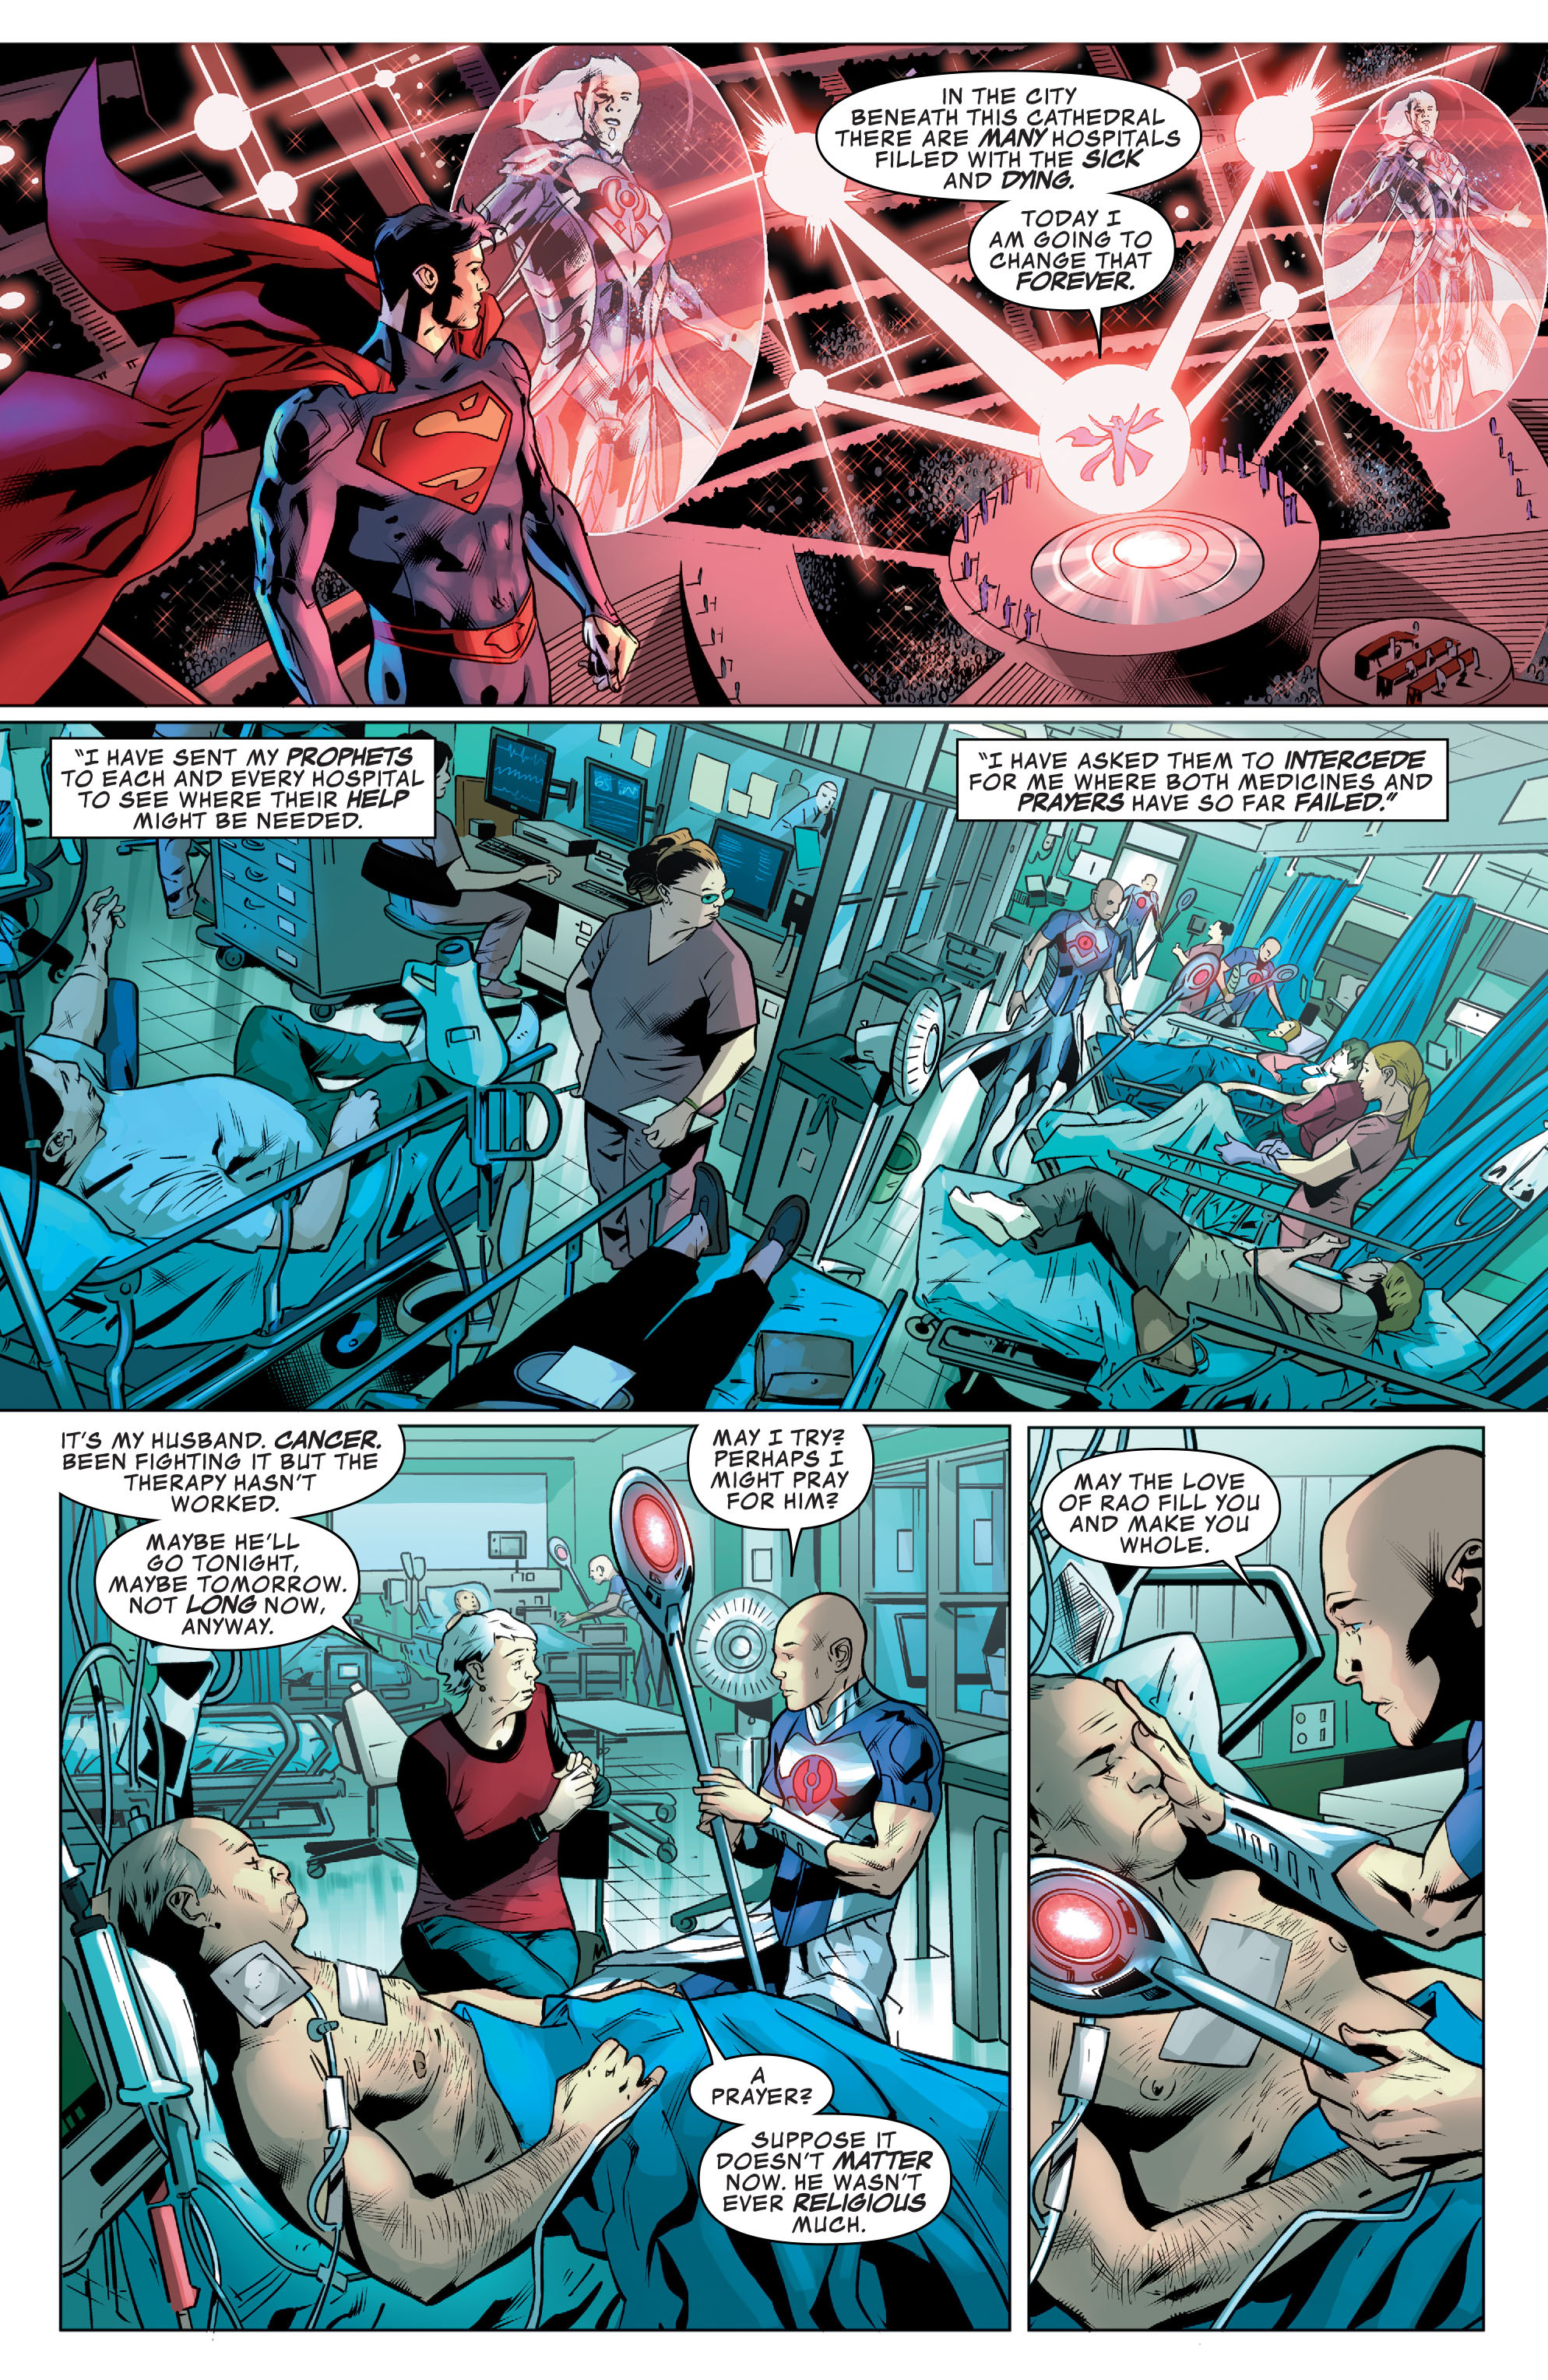 Justice League Of America #2 Spoilers & Review: Is DC Comics